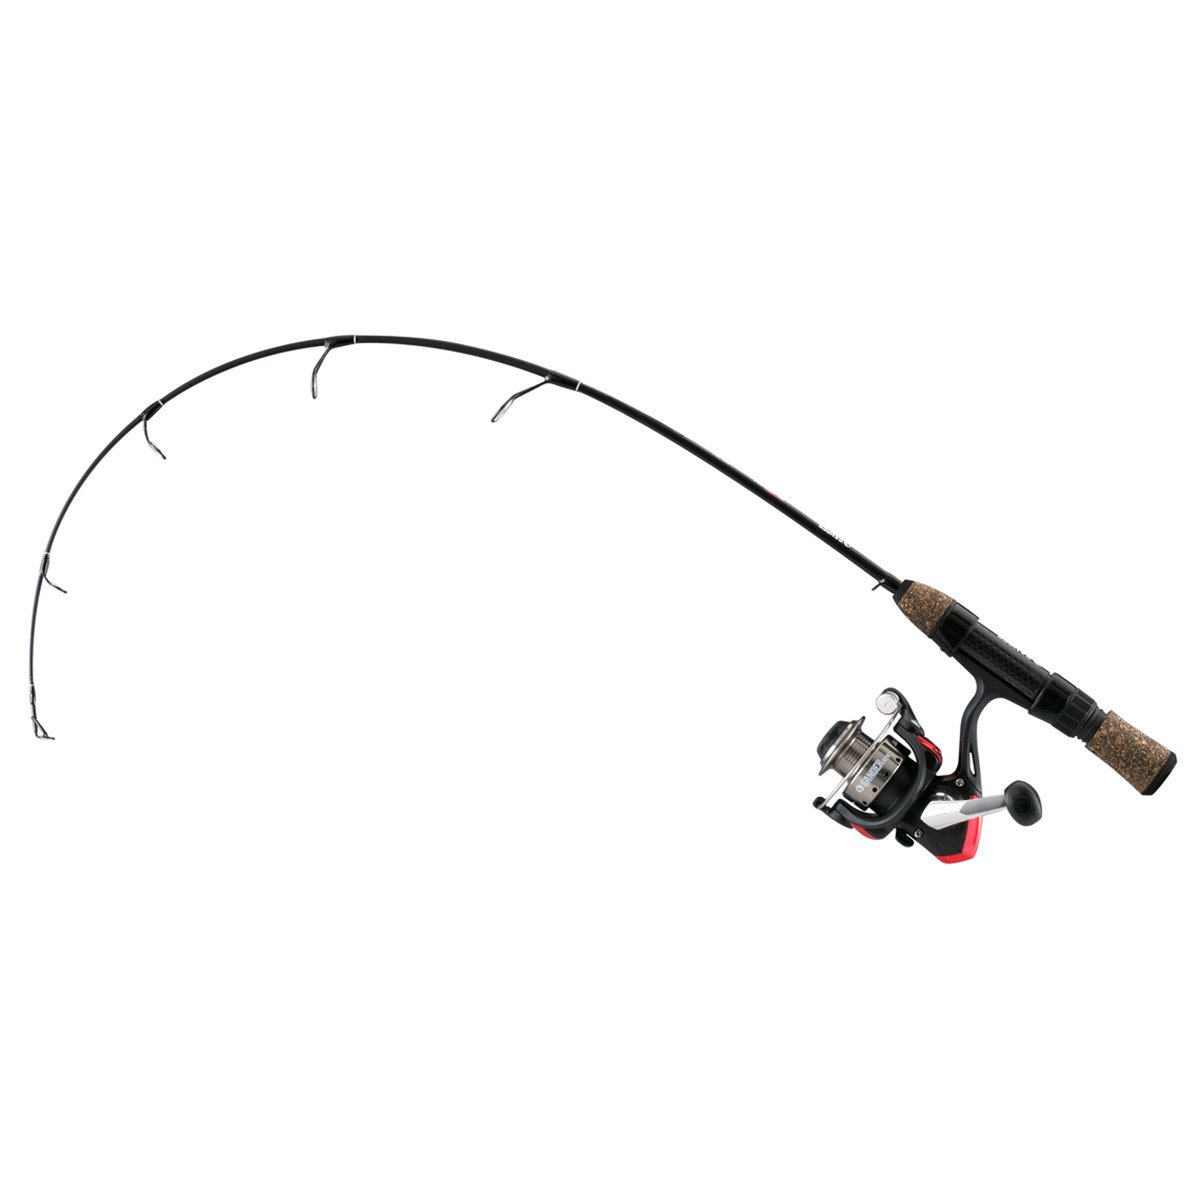 Gander Mountain Shorty Ice Fishing Combo 30 Medium Heavy-756382 джемпер qed london qed london qe001ewrbo81